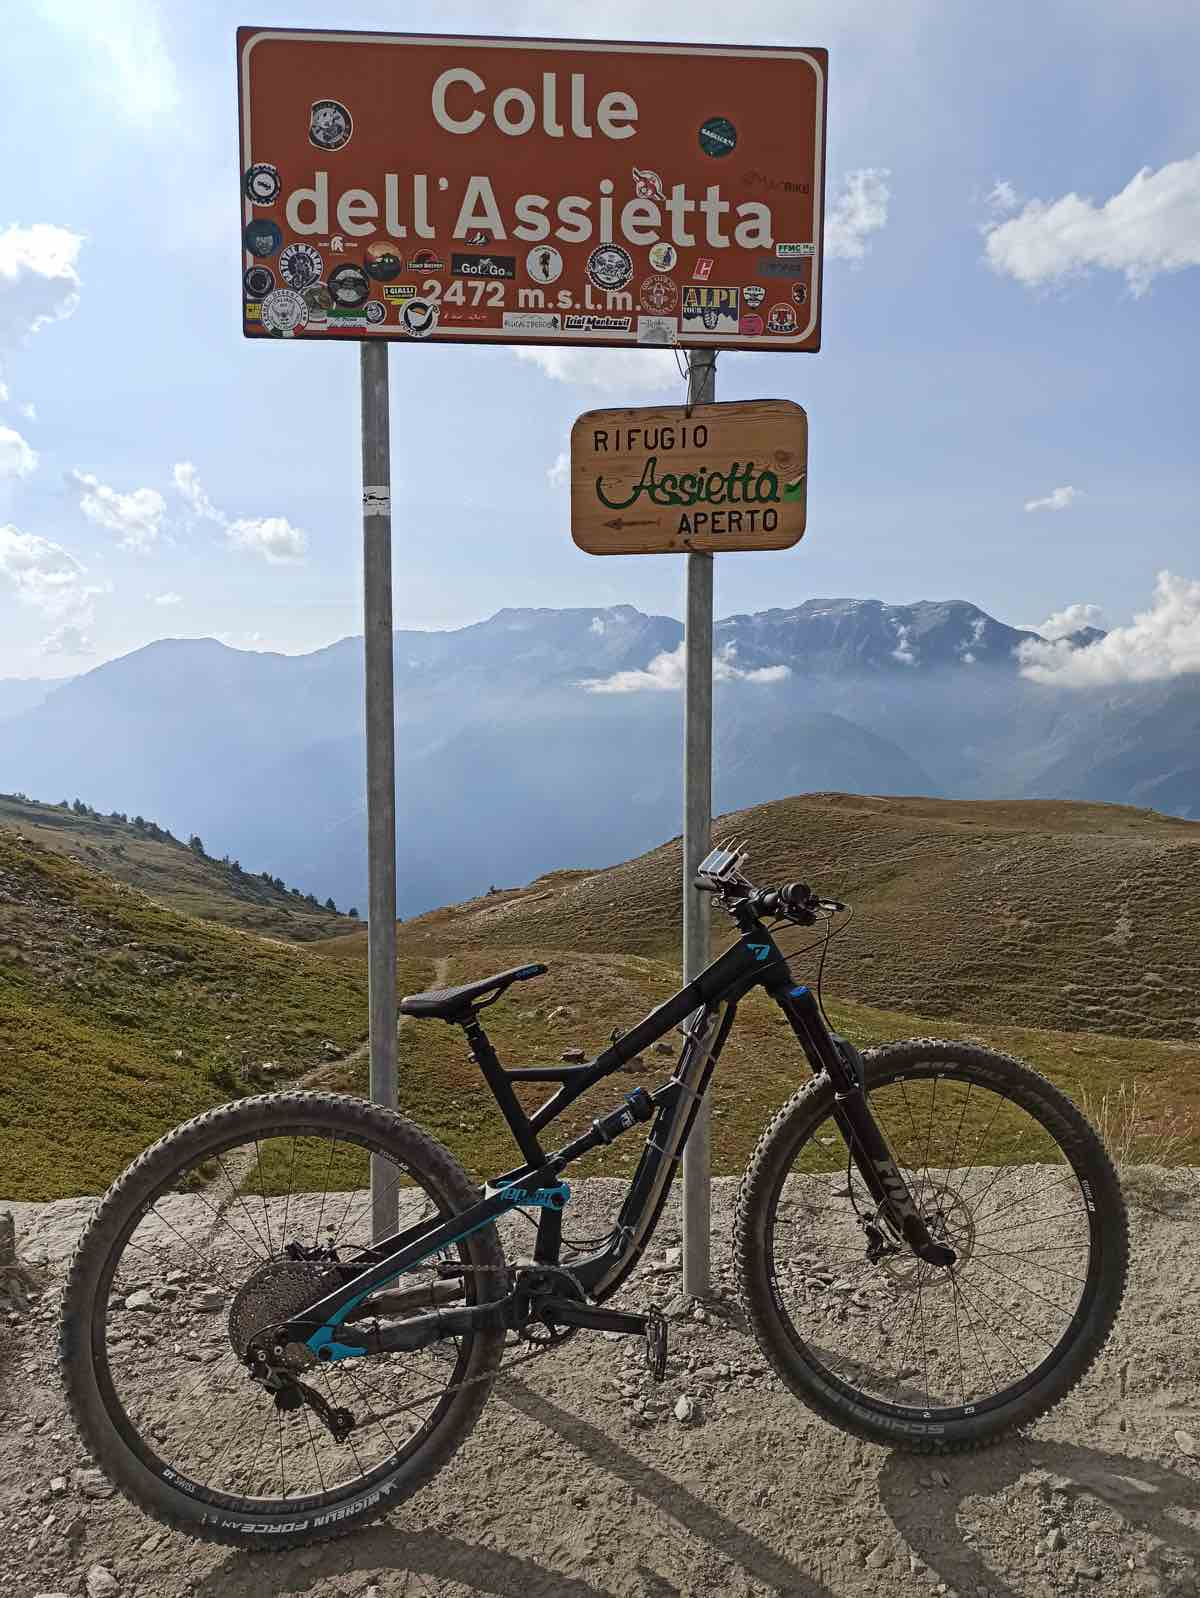 bikerumor pic of the day a mountain bike is next to a sign that says Colle dell'Assietta and a sign for a refugio on the top of a mountain pass in the alps, the mountains in the distance are covered by clouds.